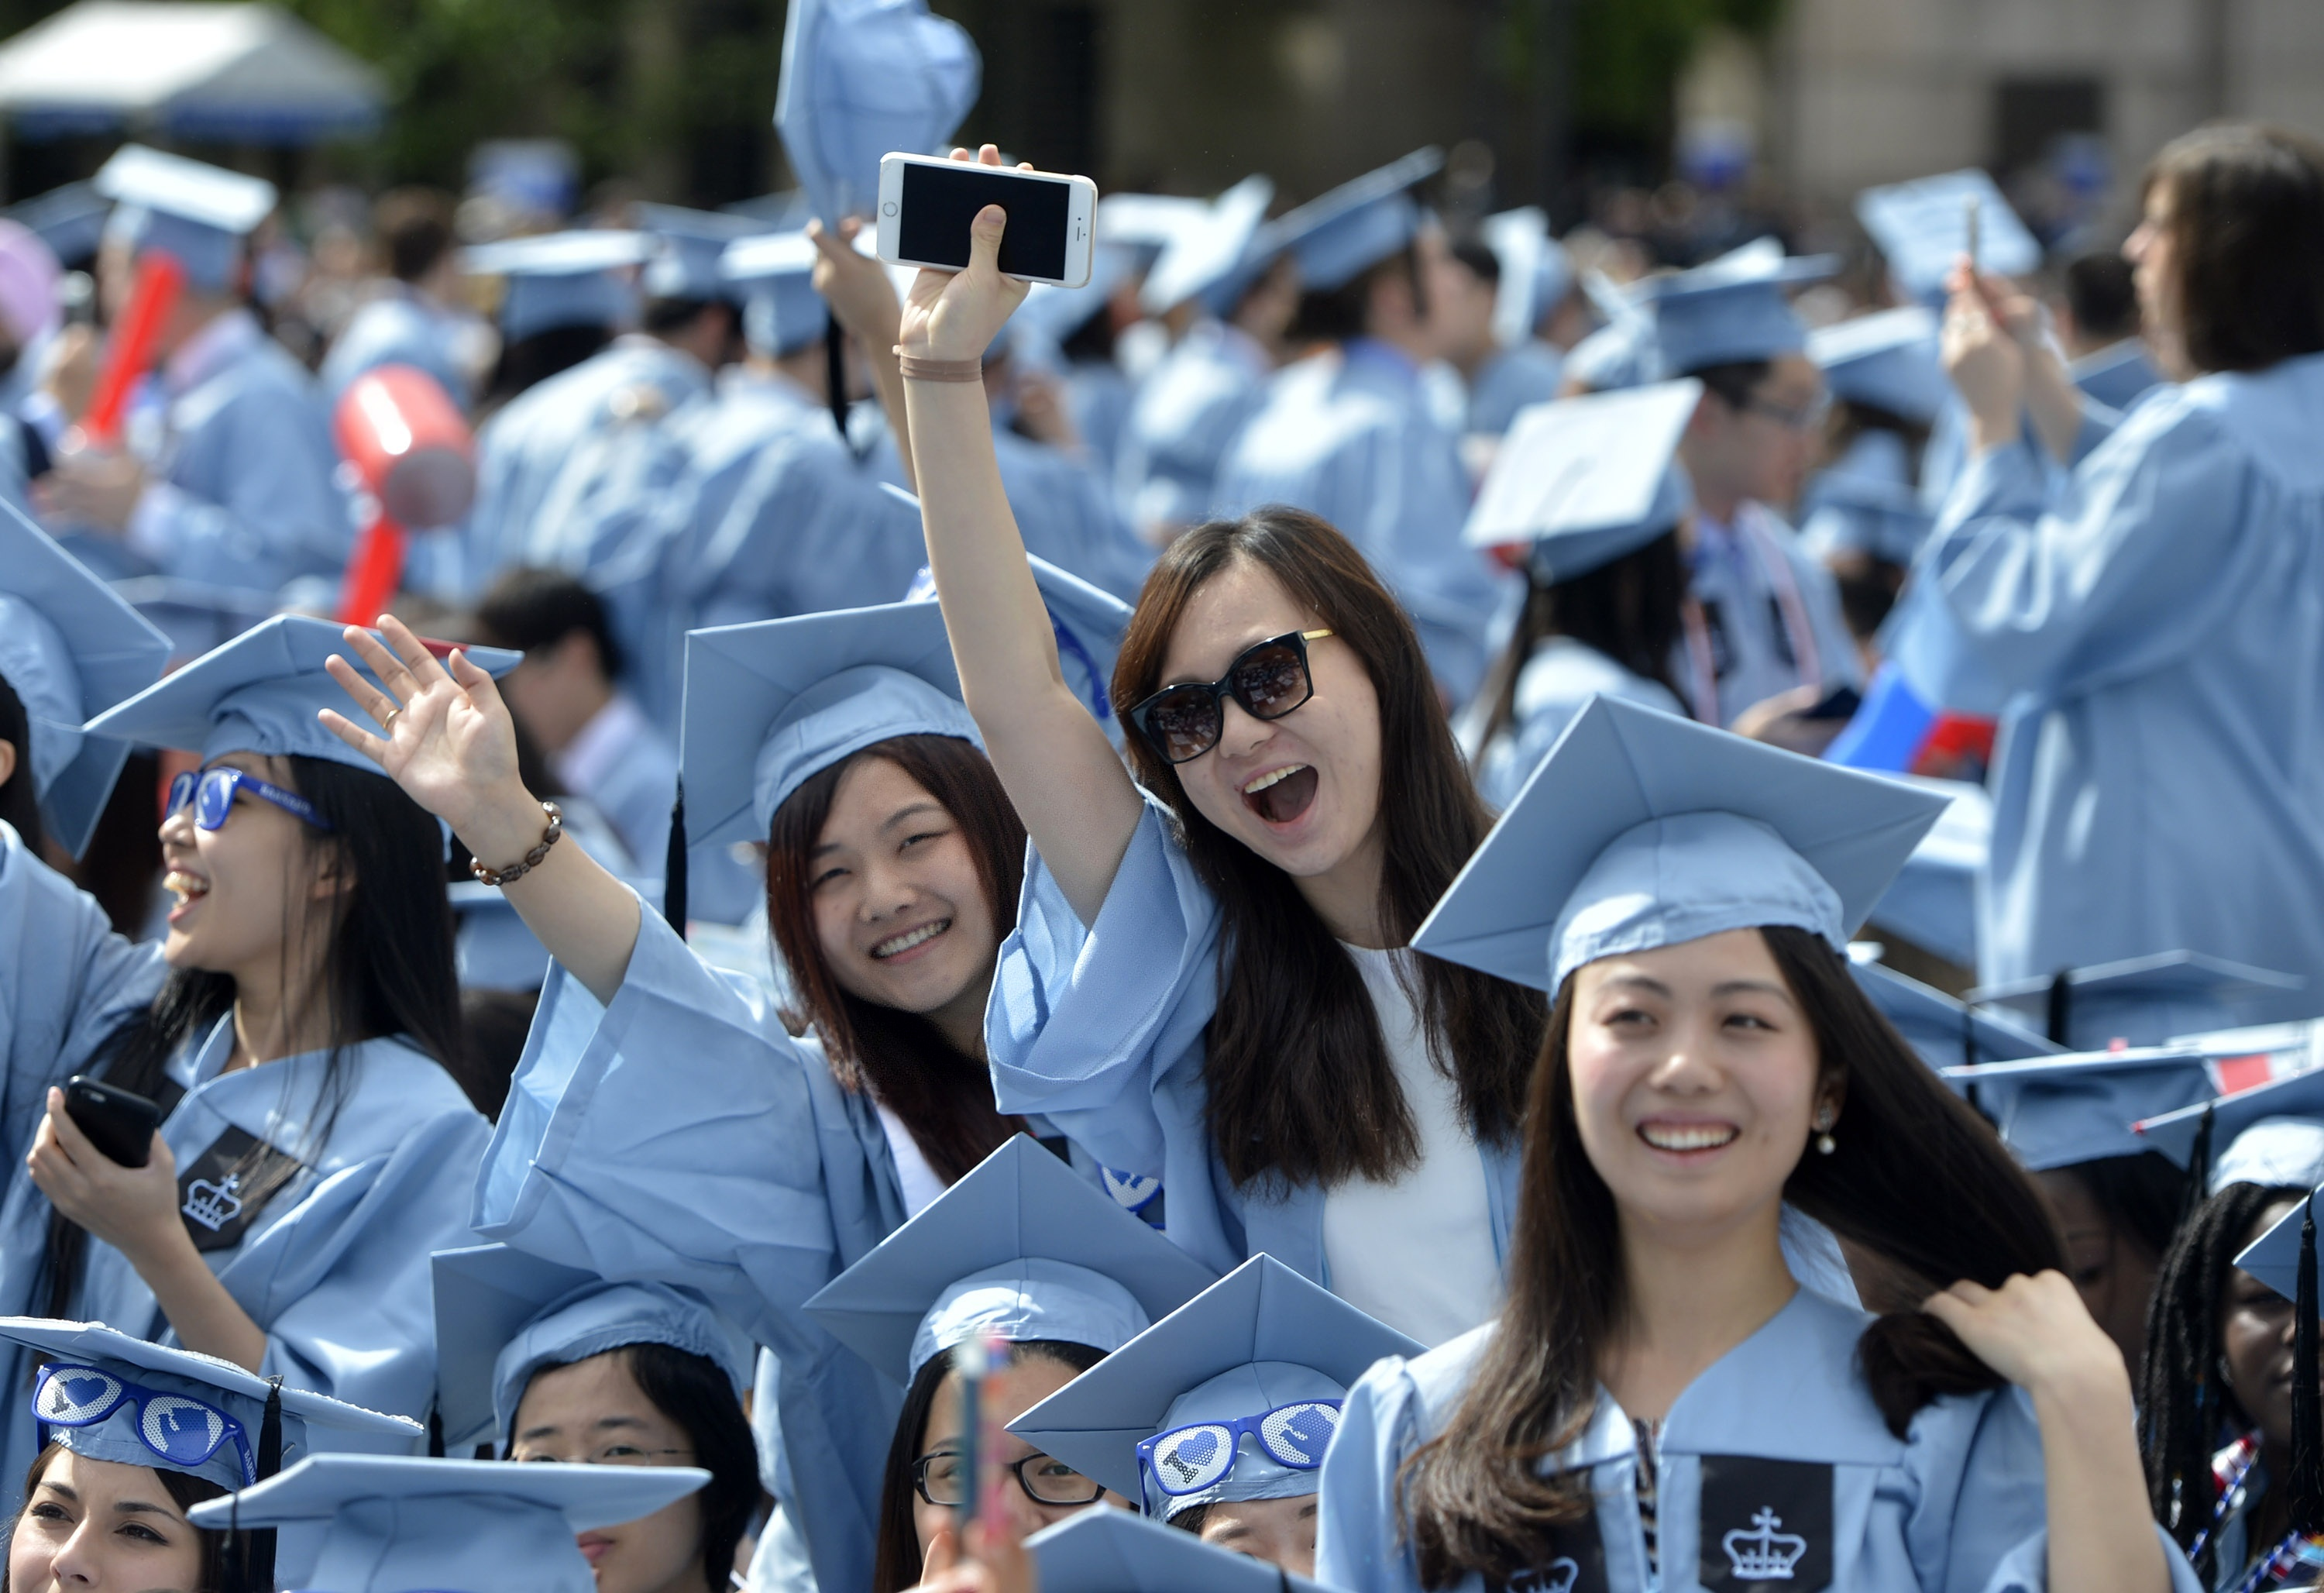 More Chinese students returning home after overseas study